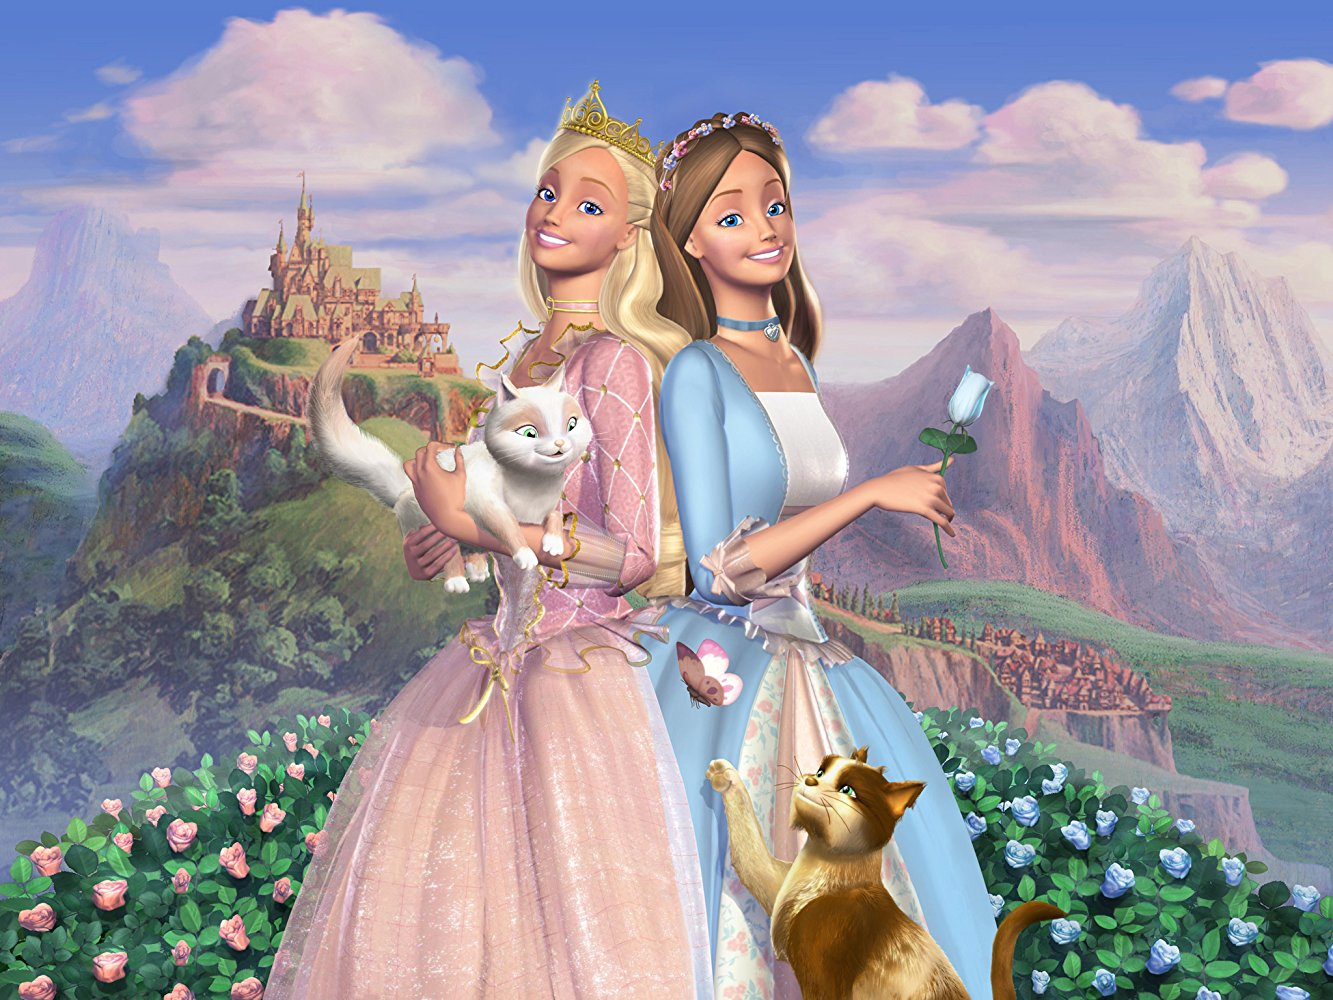 Princess Elise and Elise in Barbie as The Princess and the Pauper (2004)